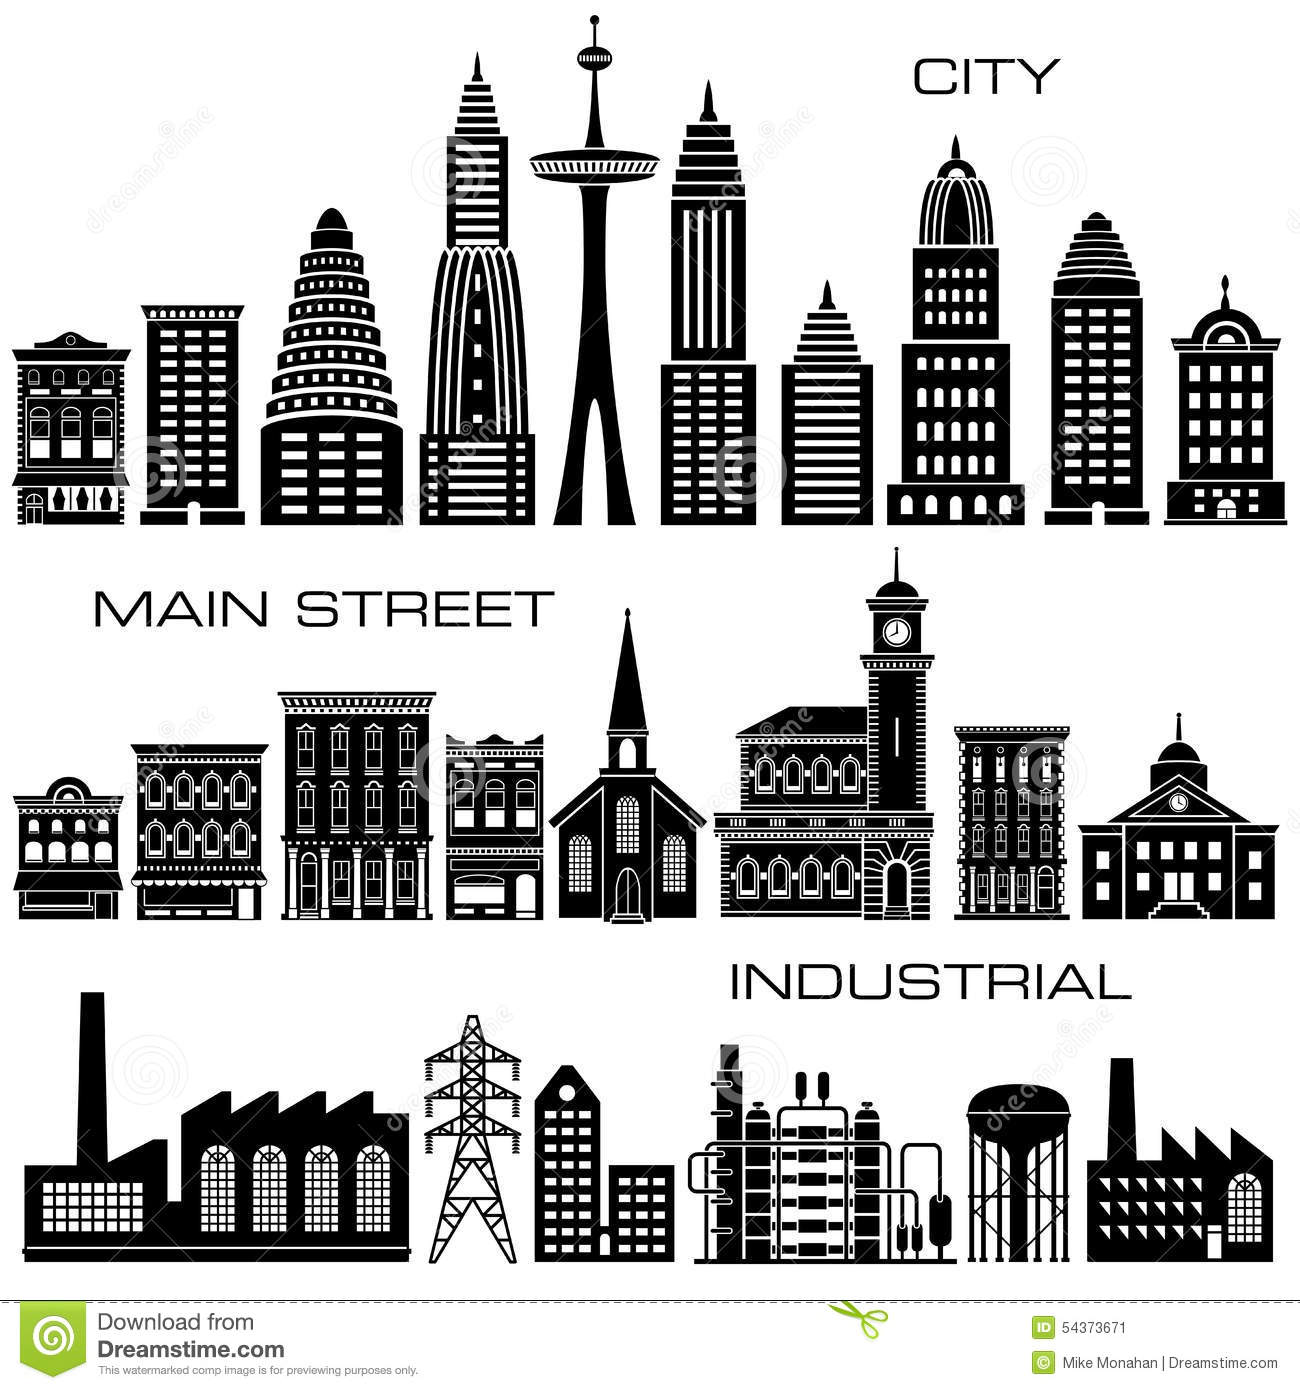 24 City, Main Street and Industrial Buildings icon set